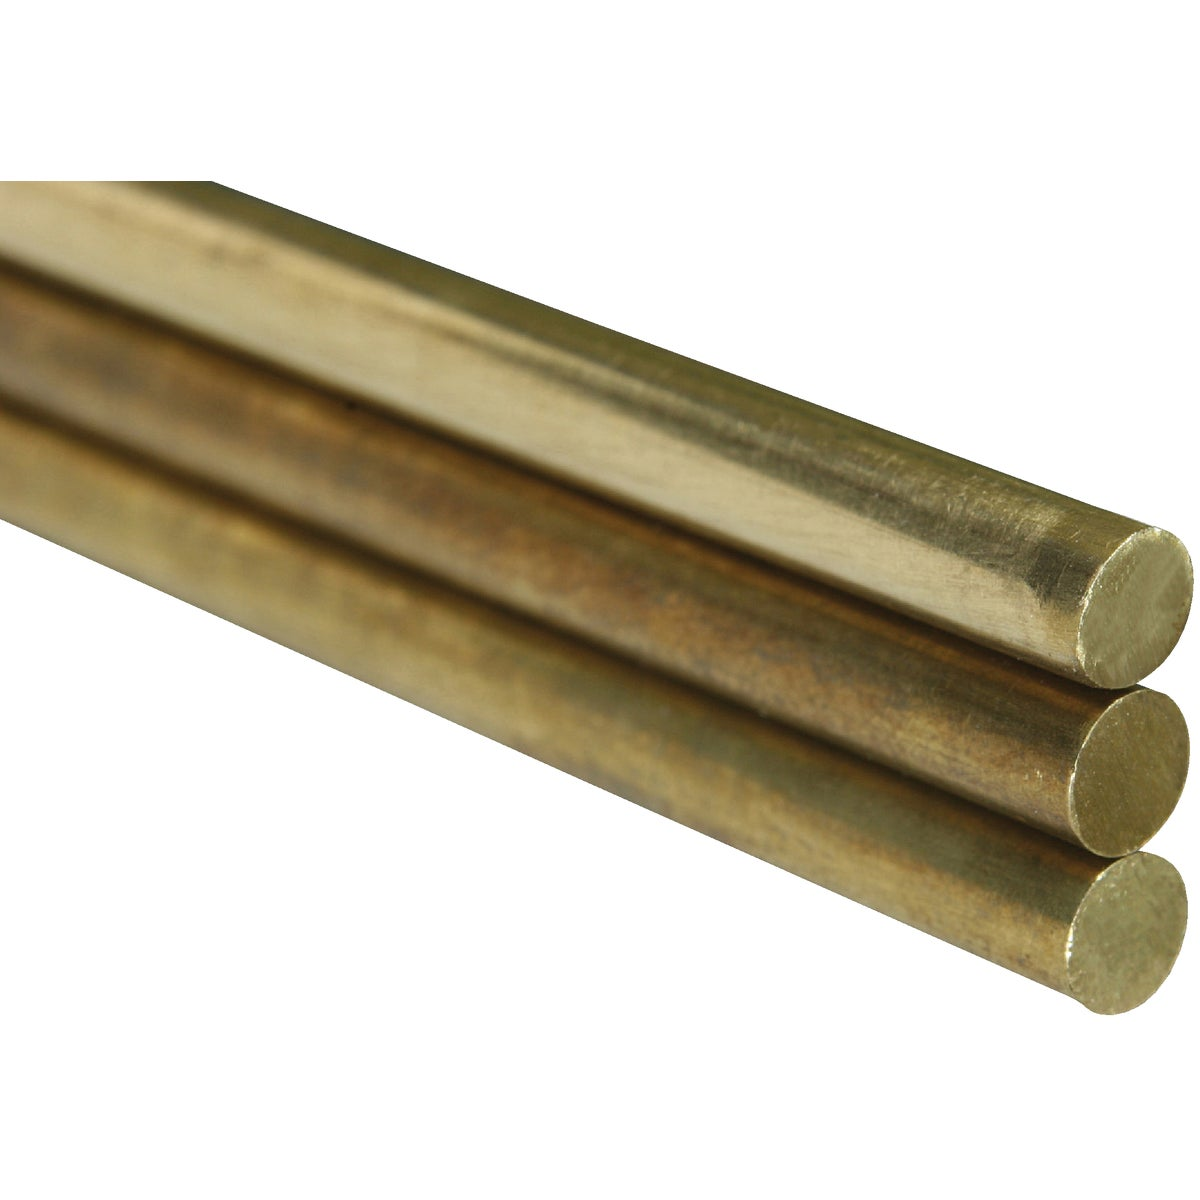 5/16X36 SOLID BRASS ROD